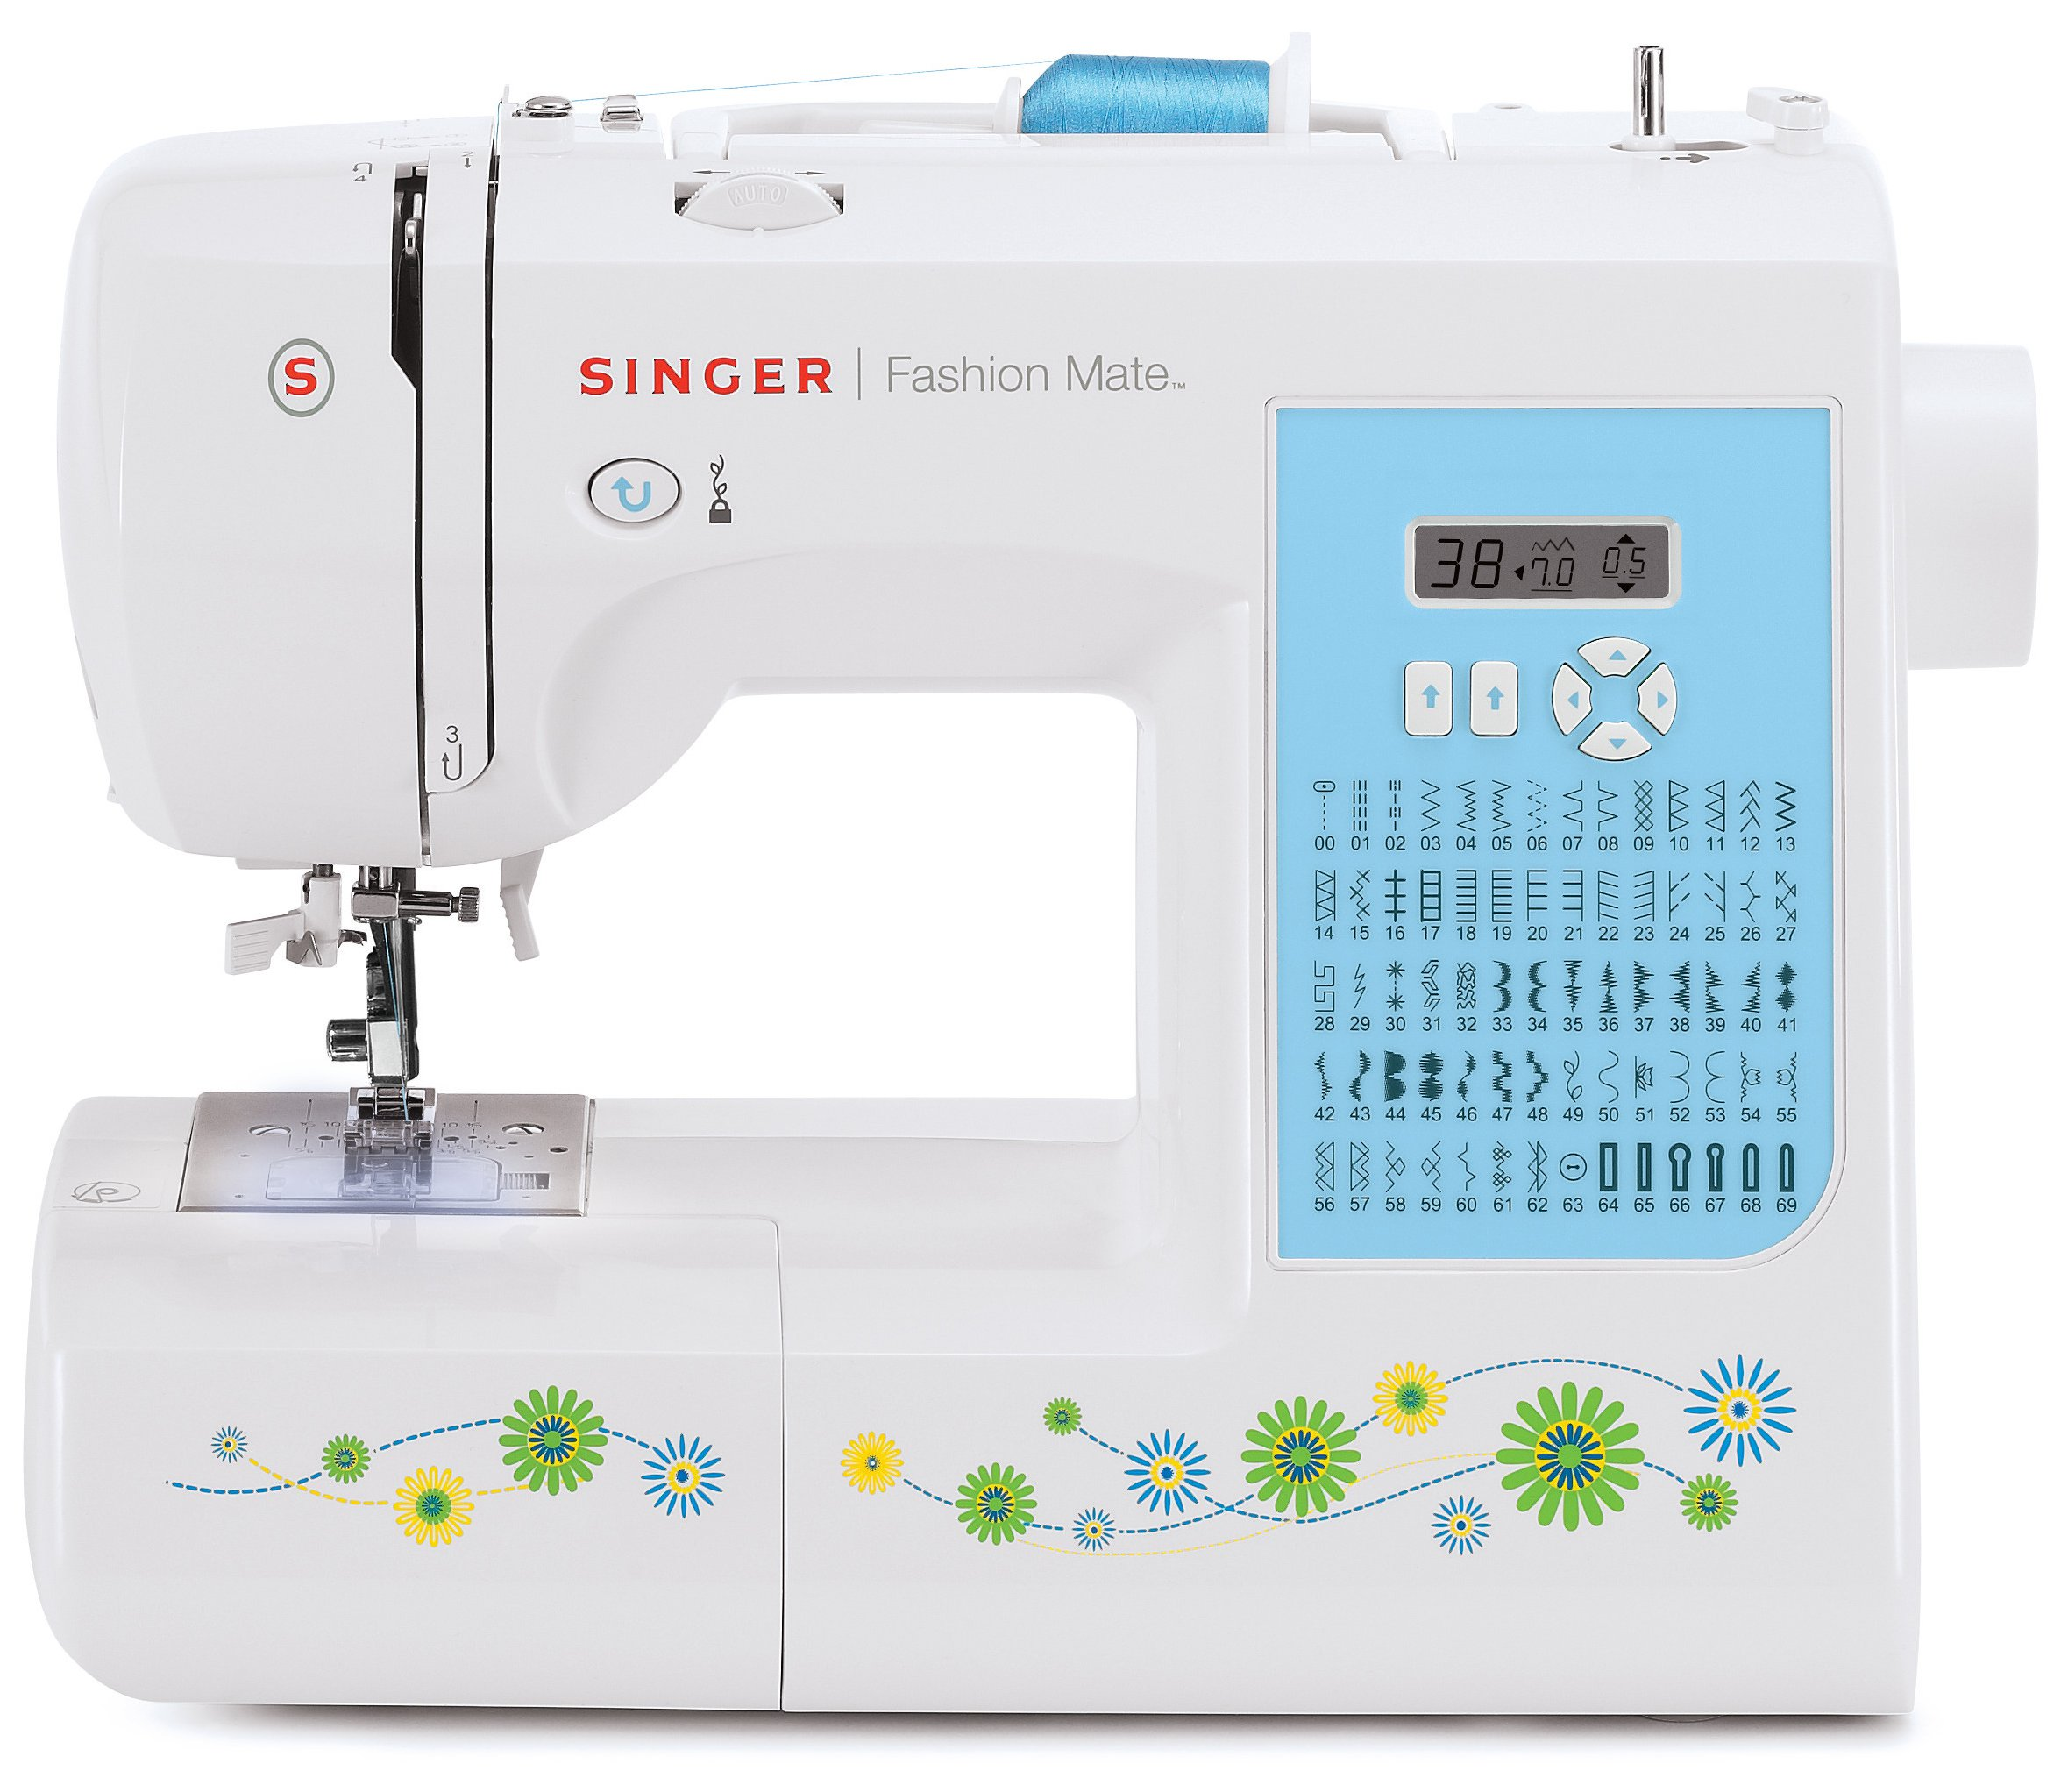 - Singer Fashion Mate 7256 naaimachine